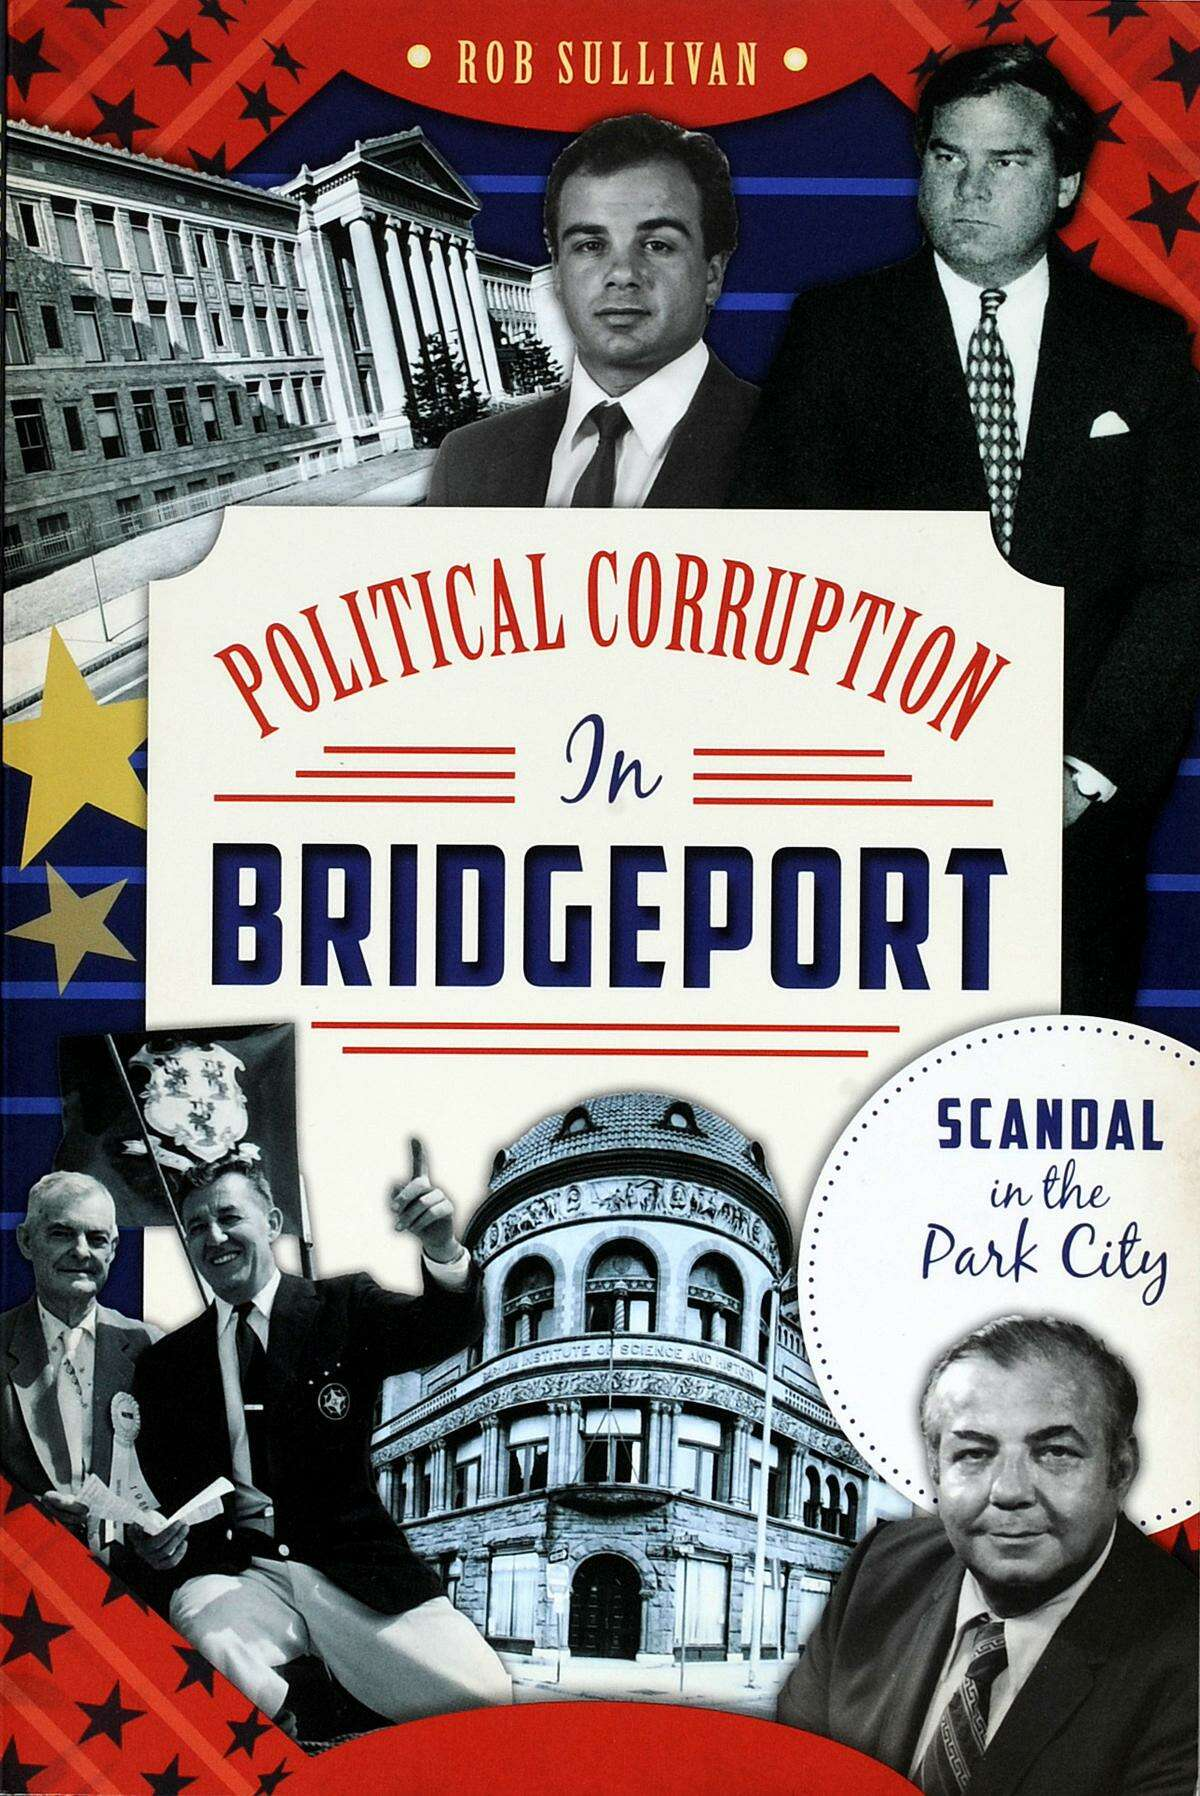 """""""Political Corruption in Bridgeport, Scandal in the Park City"""" by Rob Sullivan"""